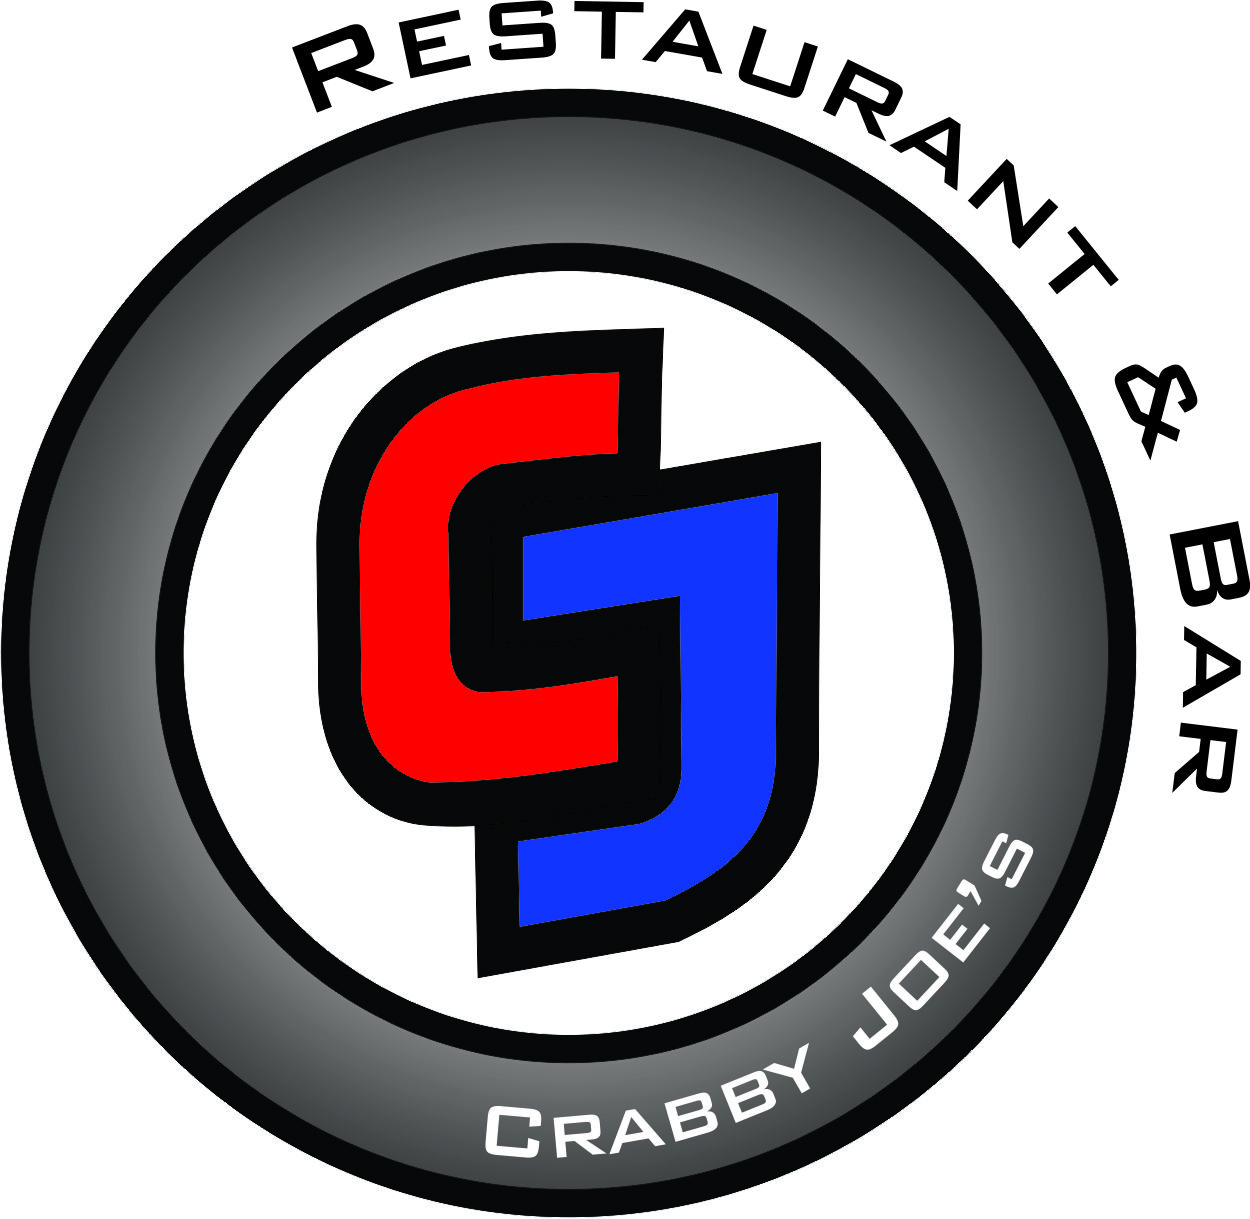 Logo Design by Andrew Erb - Entry No. 18 in the Logo Design Contest Inspiring Logo Design for Cj's.